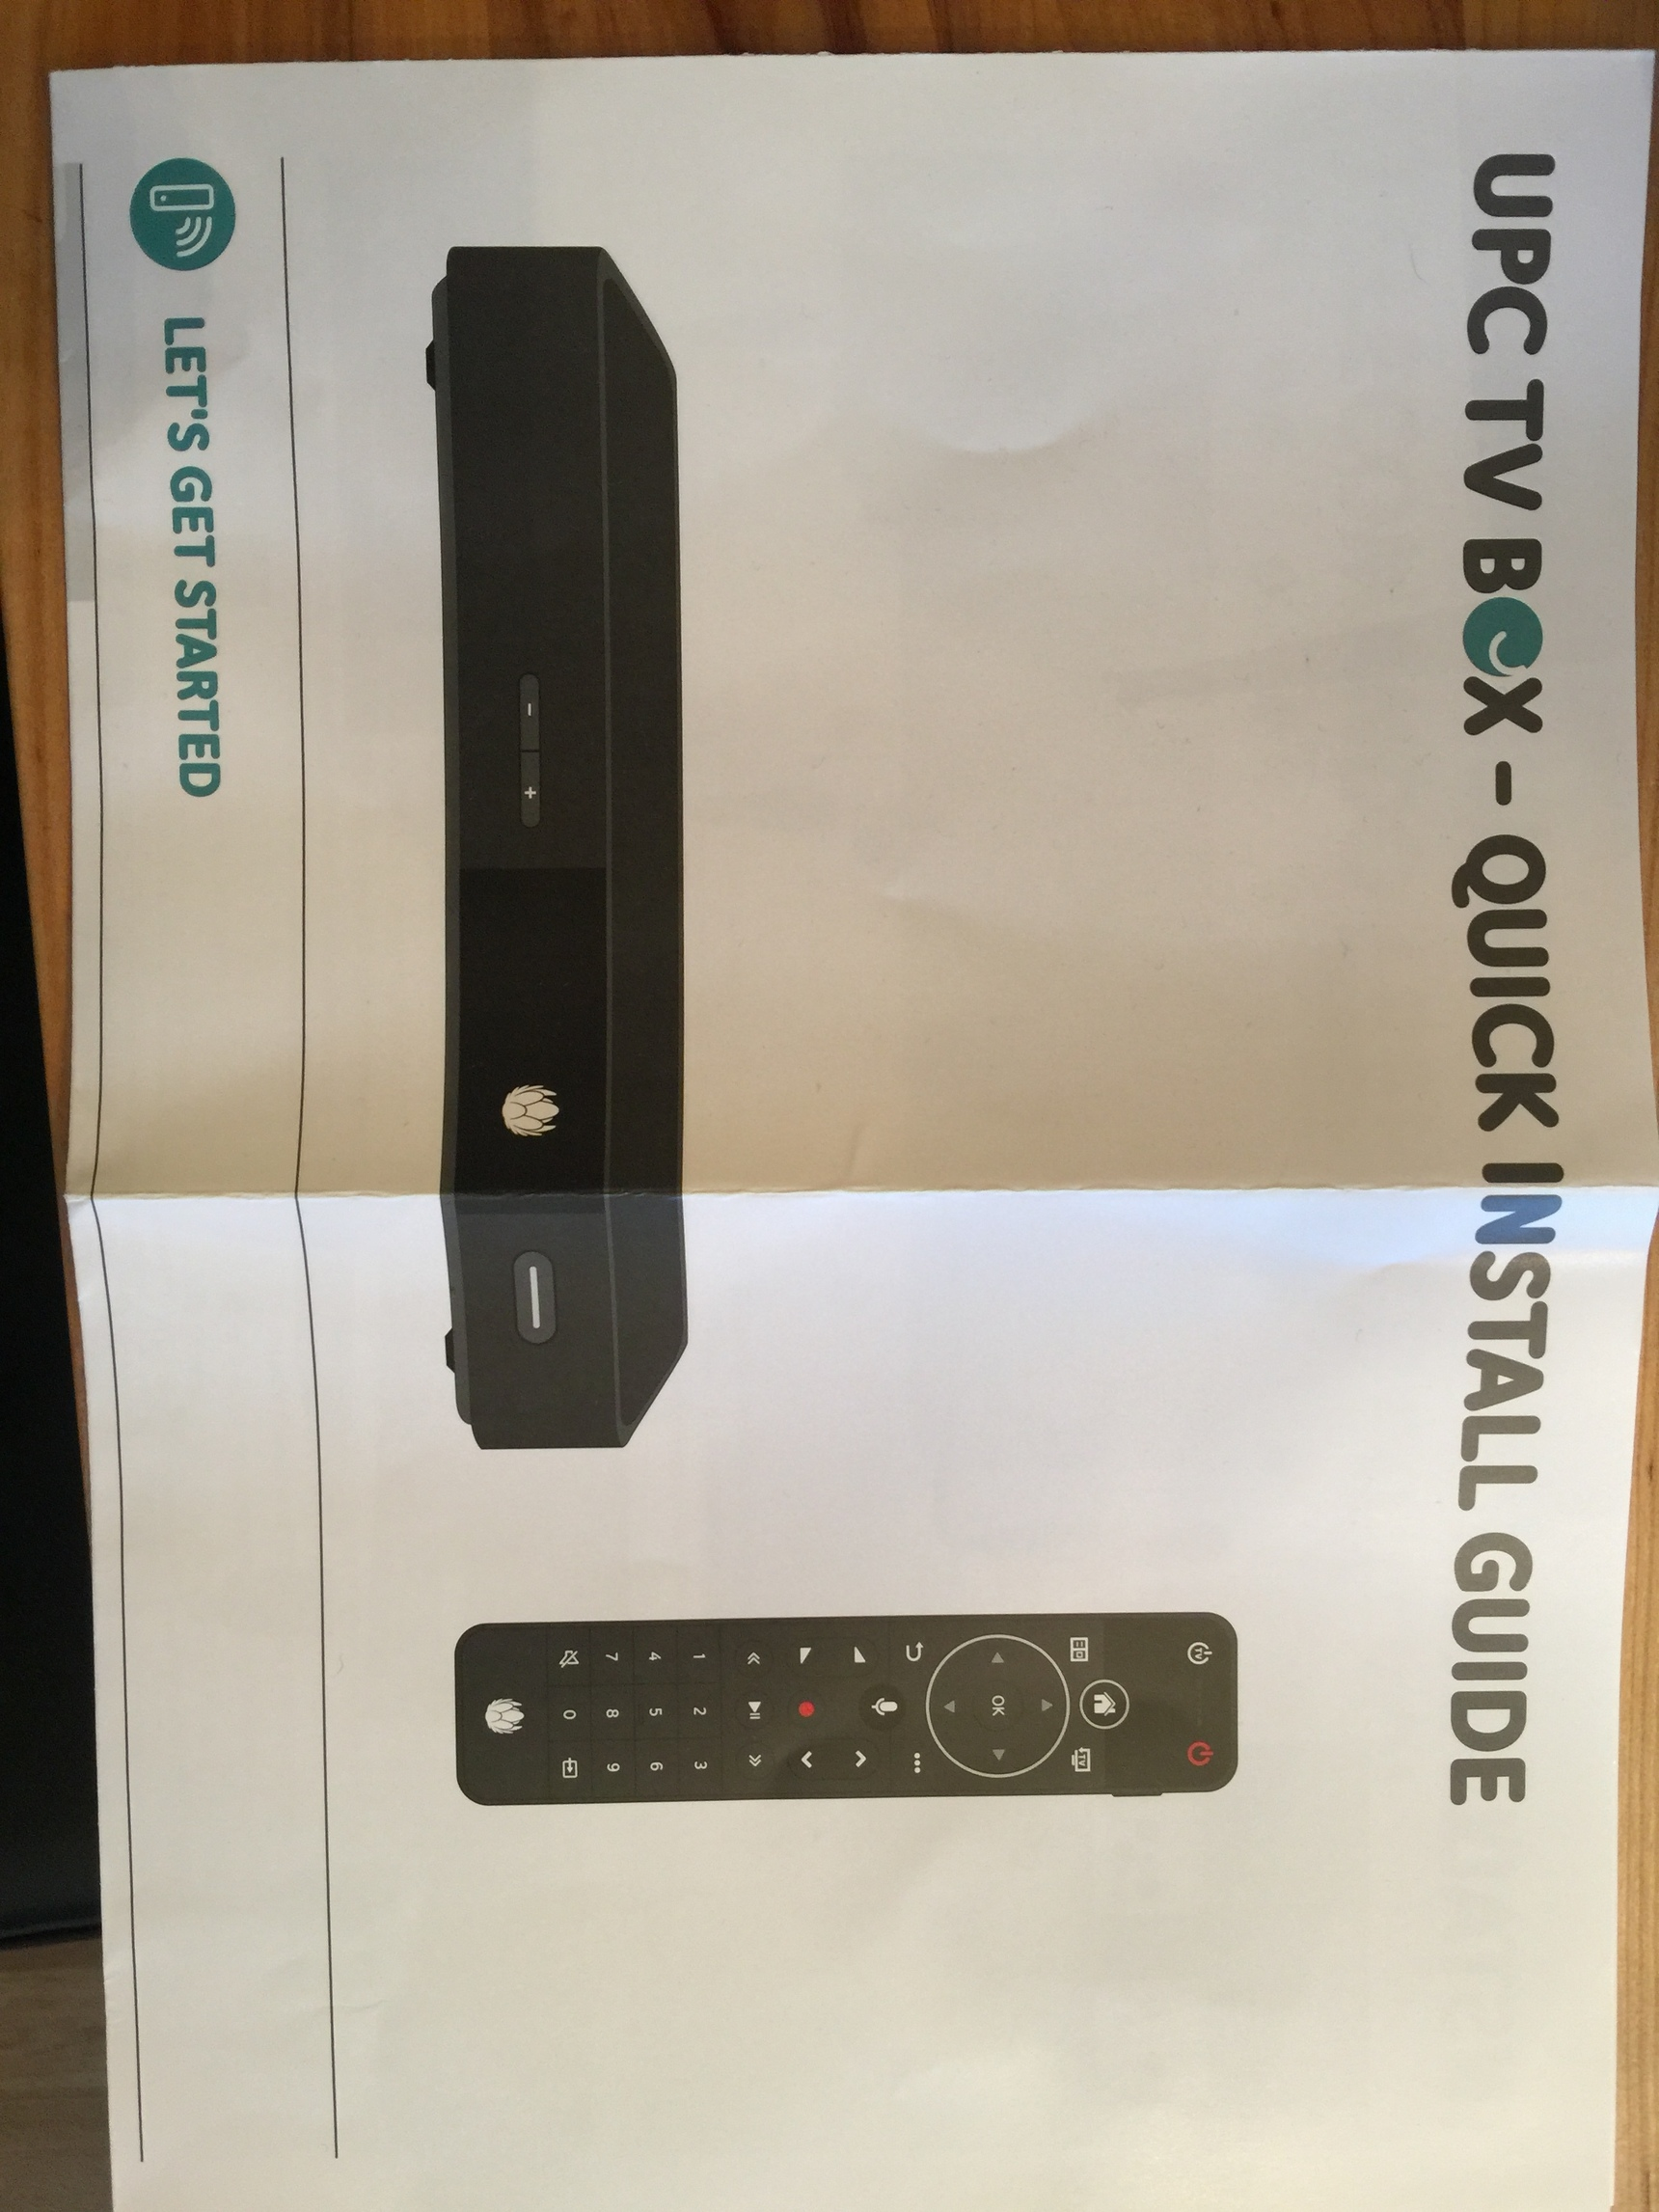 new TV box from UPC support - Device Specific - Planet NEEO